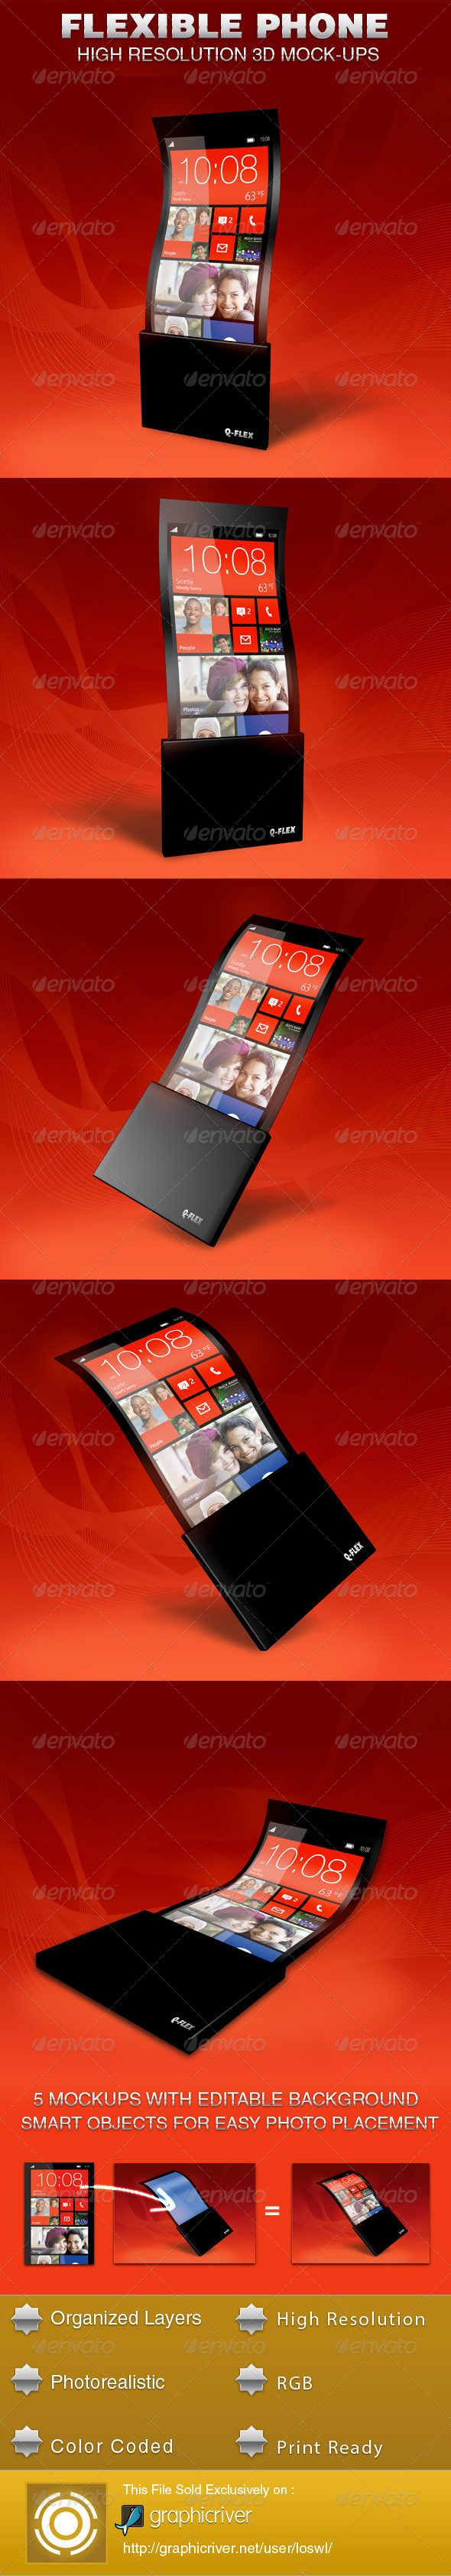 The Flexible Phone Mockup Template is sold exclusively on graphicriver, it can be used for your UI display projects or for other digital display items. The file includes 5 High Resolution Mockups with Smart objects for easy placement of images.  $5.00